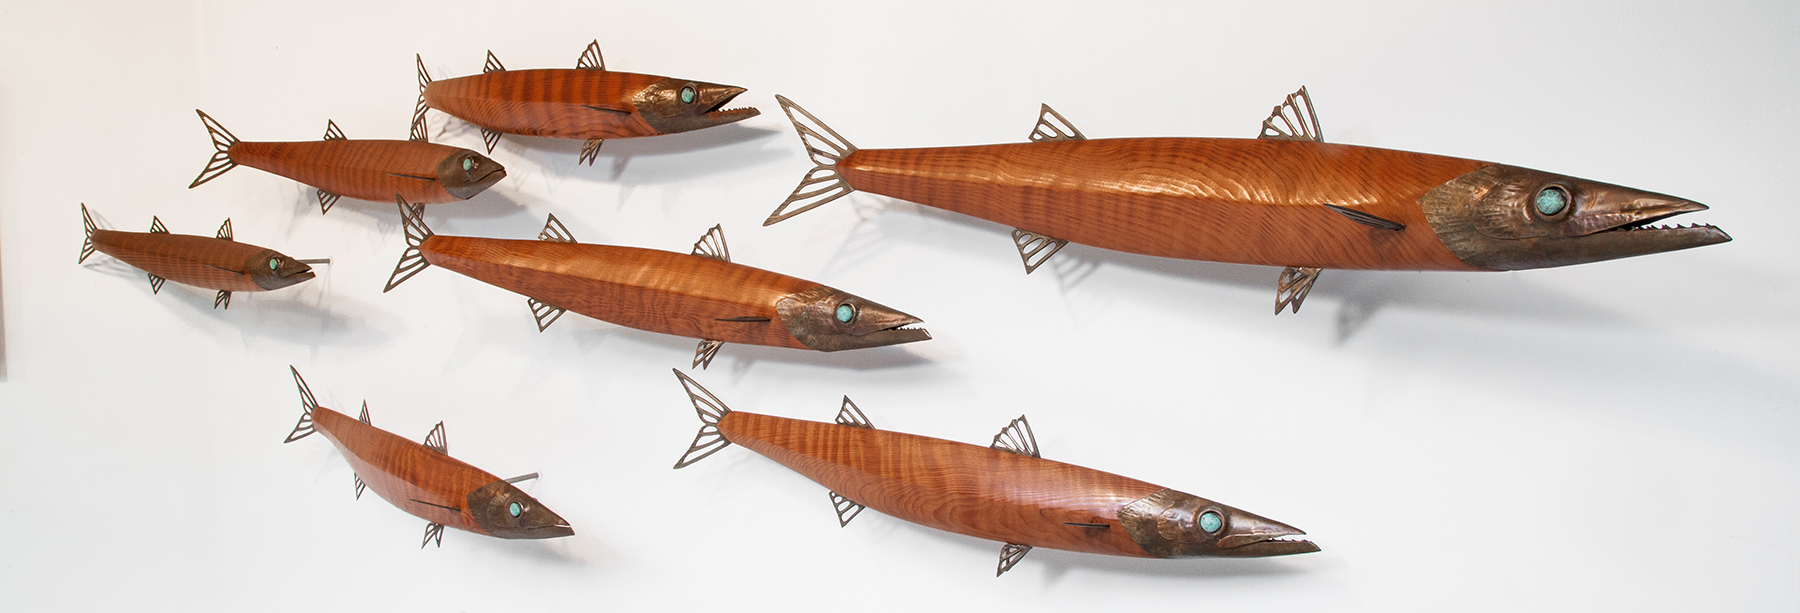 fish sculpture for sale